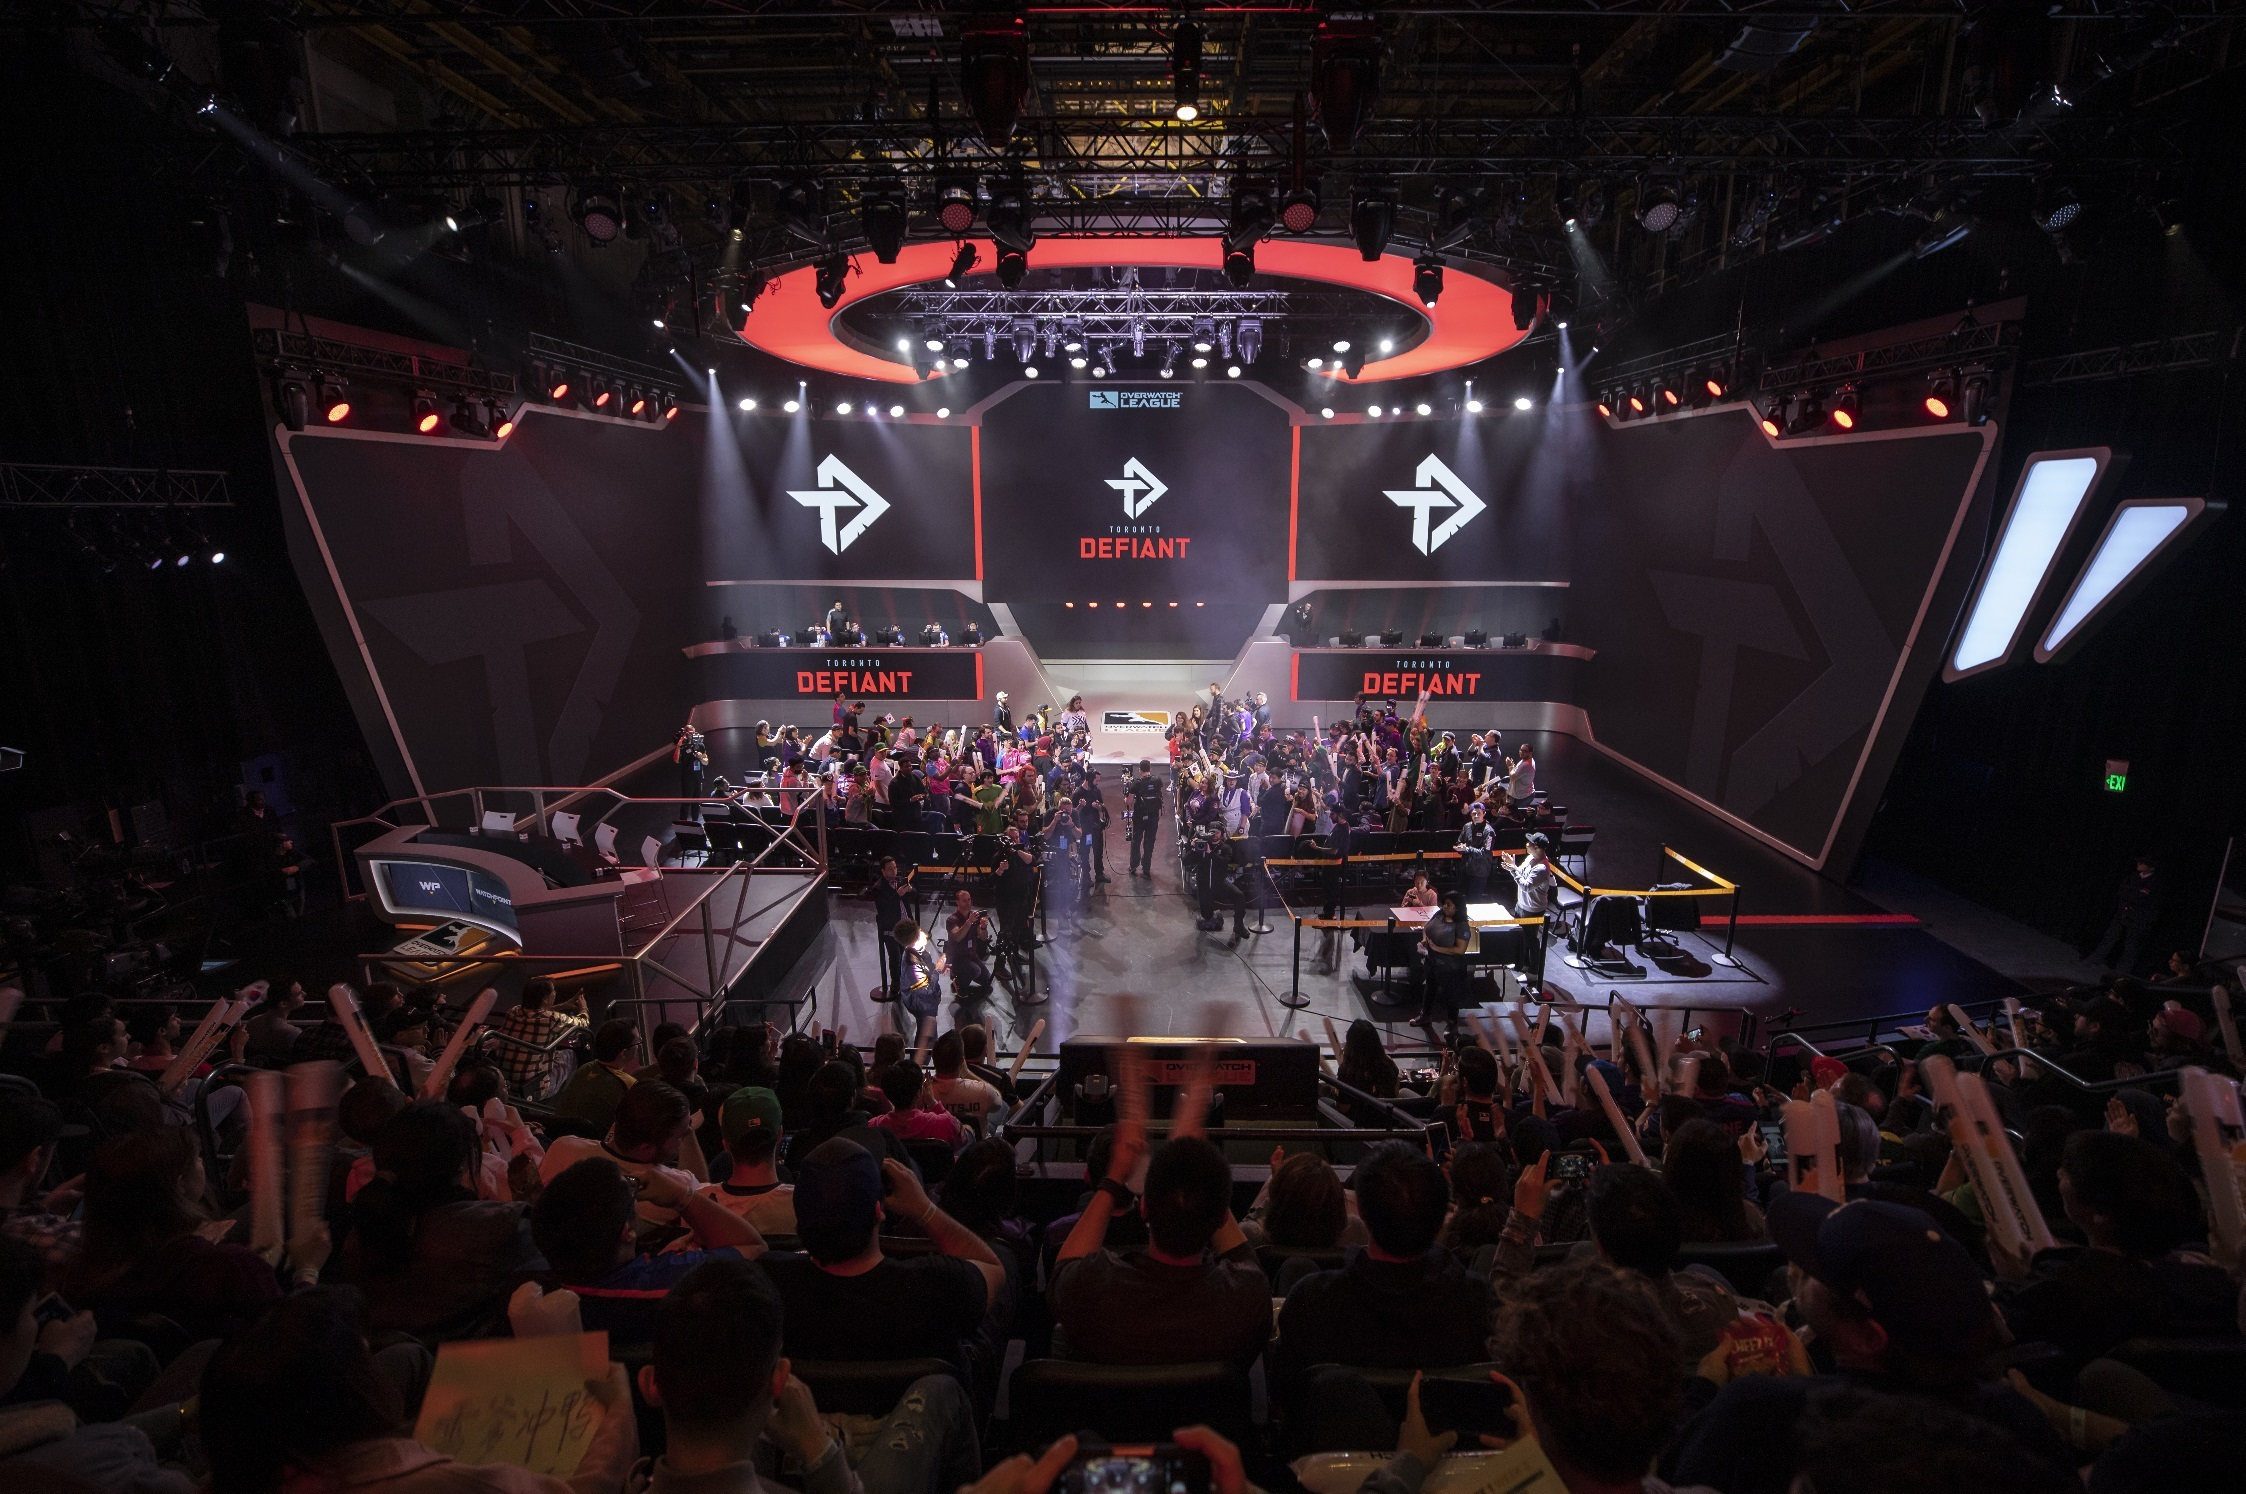 Toronto Defiant, Toronto Ultra parent company lays off multiple employees